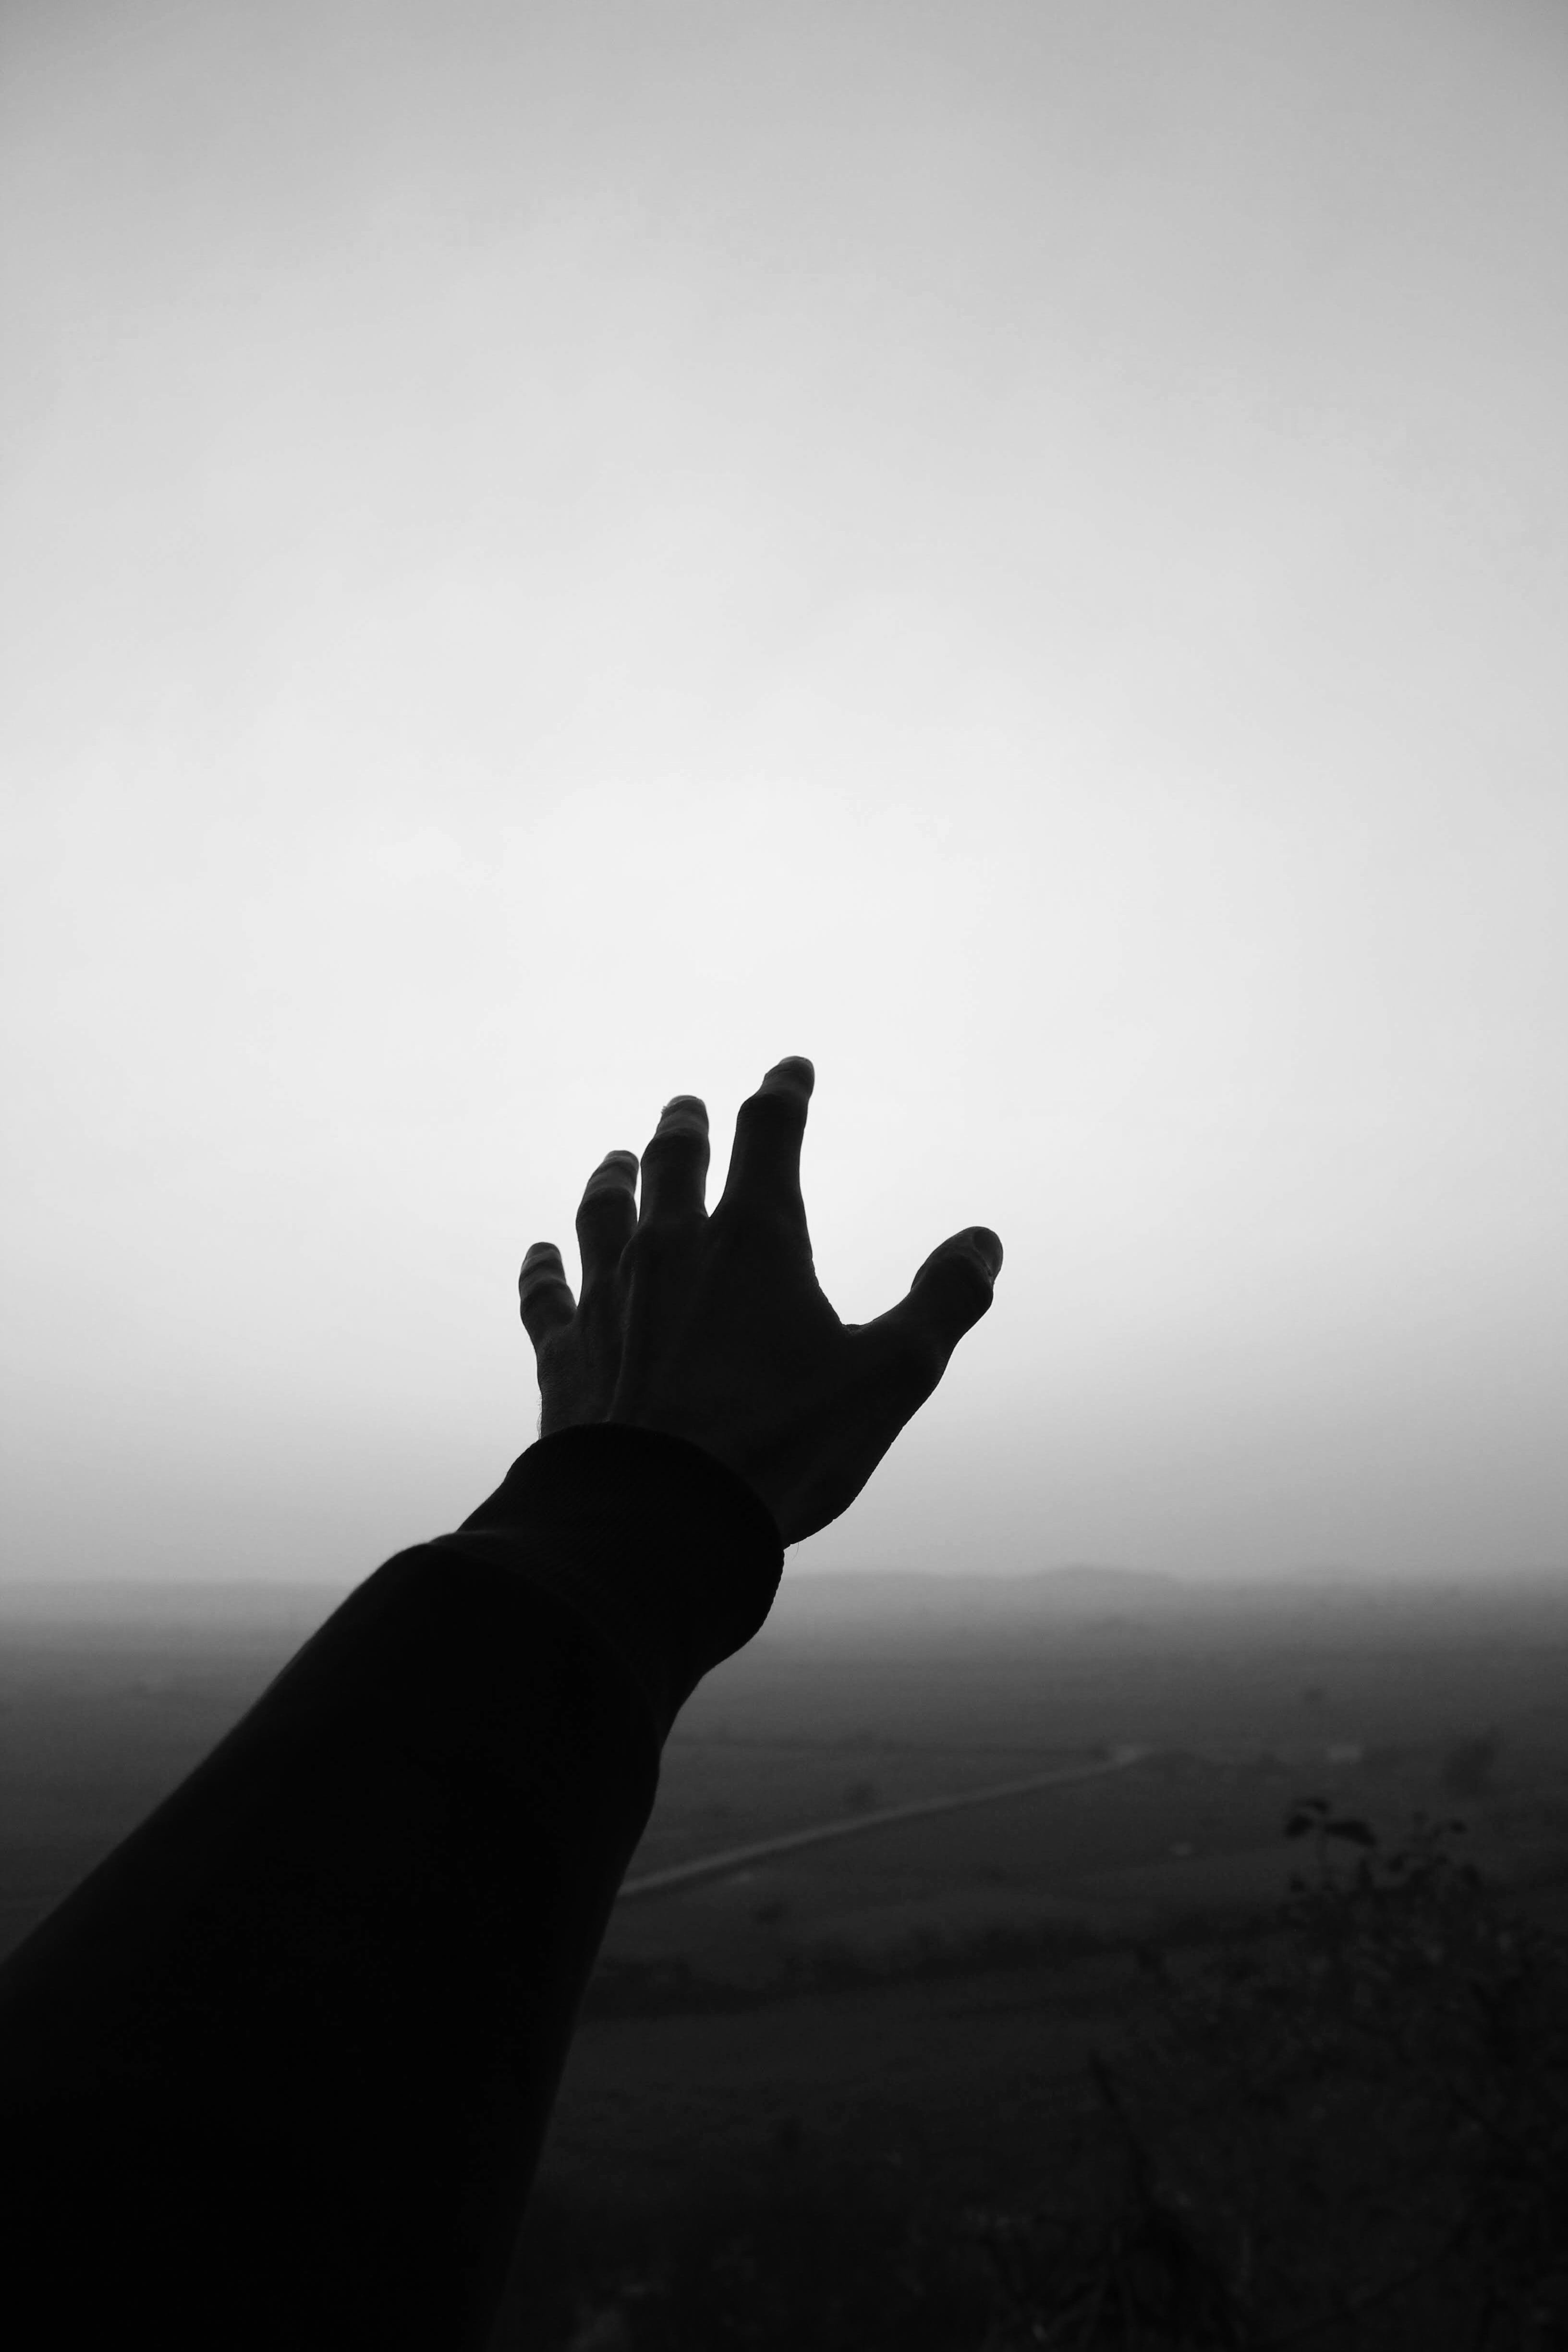 Grayscale Photo of Person's Hand Reaching For the Sky